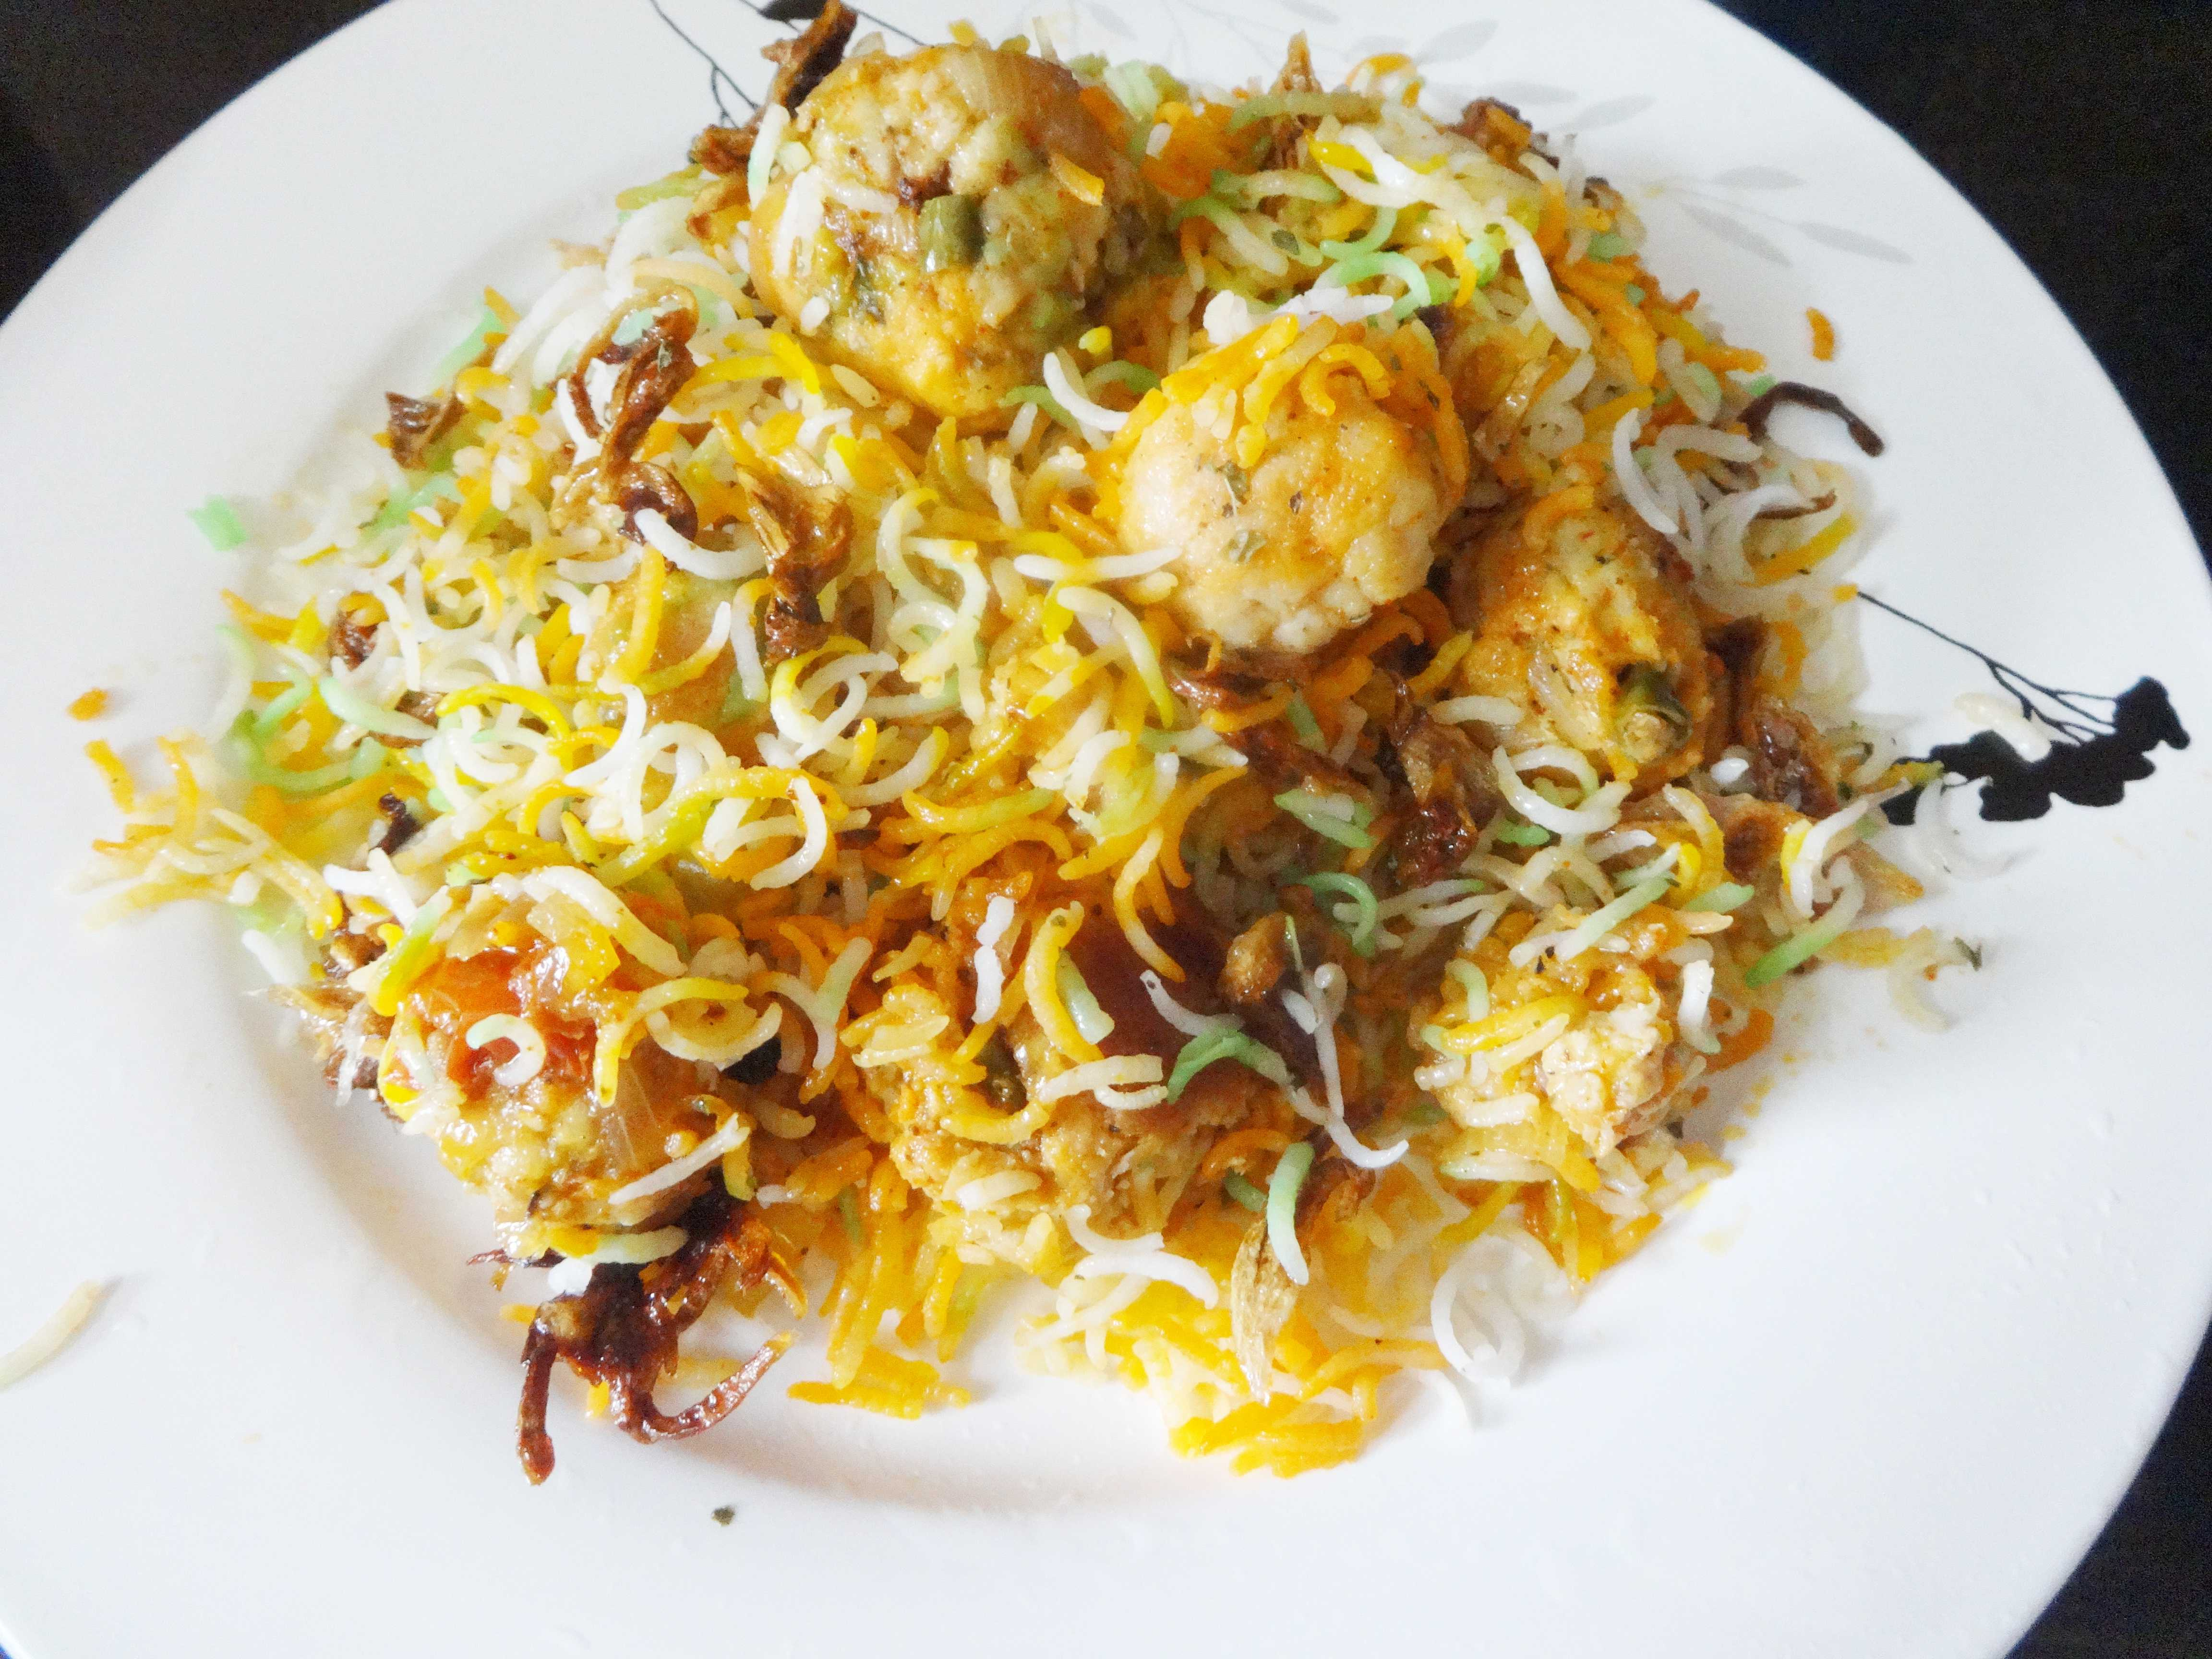 Moti Biriyani/Biryani(rice and meat ball casserole)